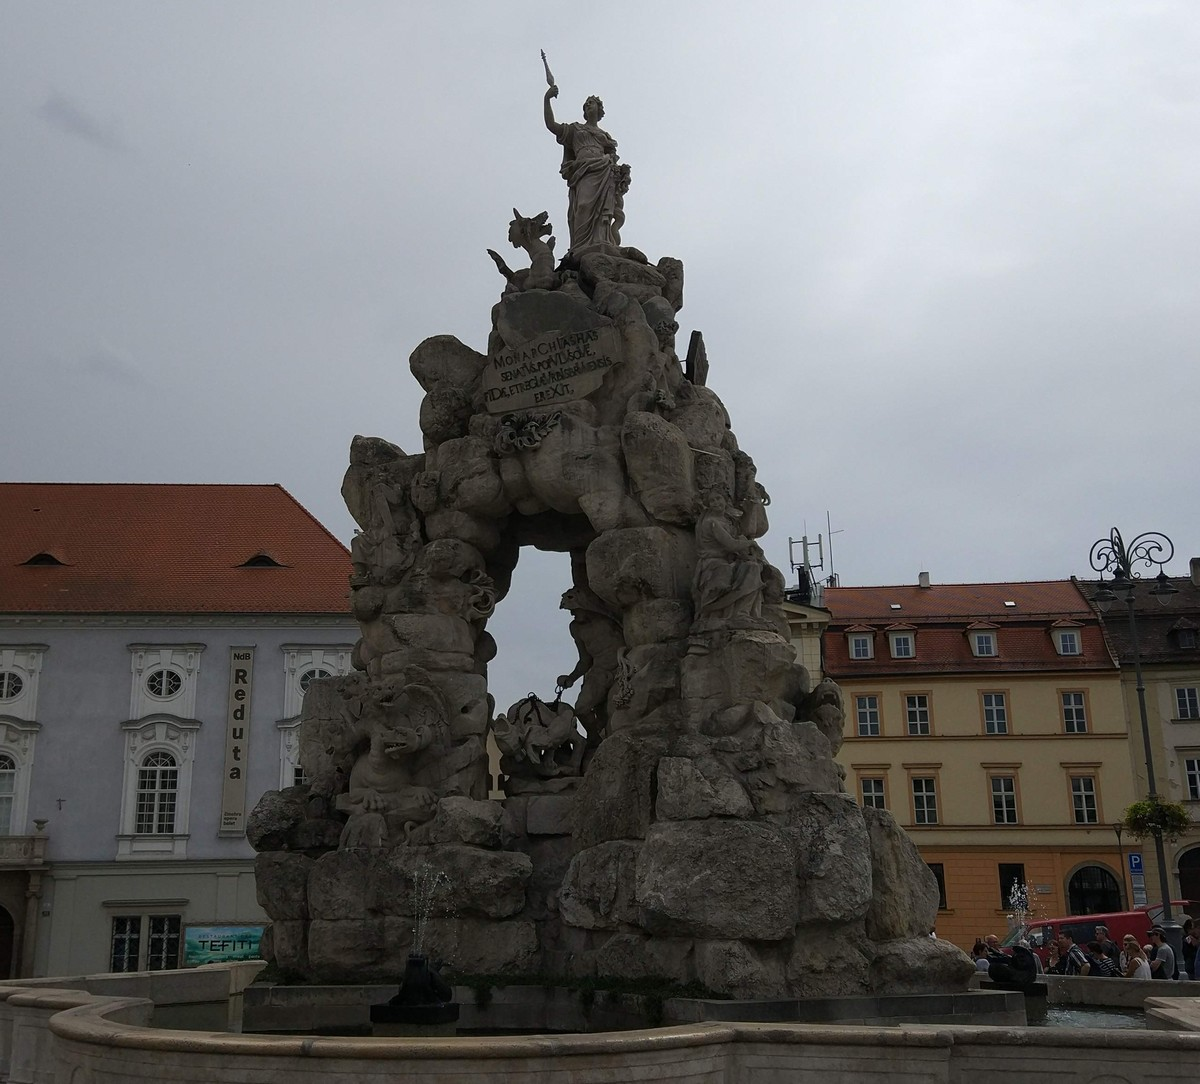 The Parnas fountain in Brno